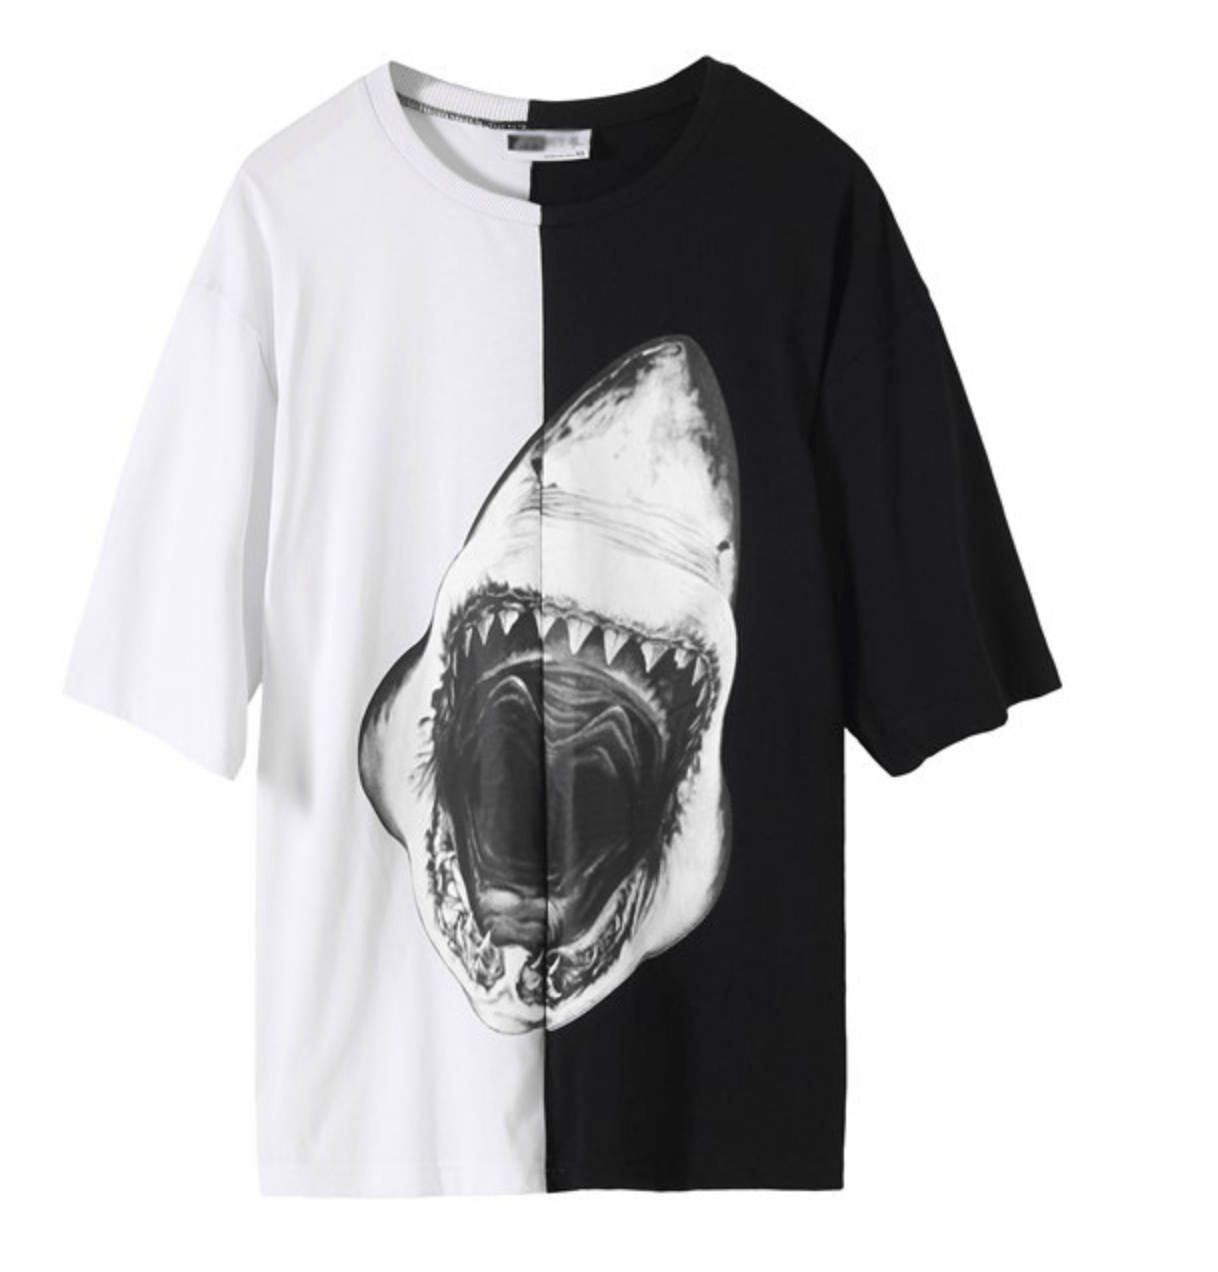 Hypest Fit top S SABOTAGE Shark Tee